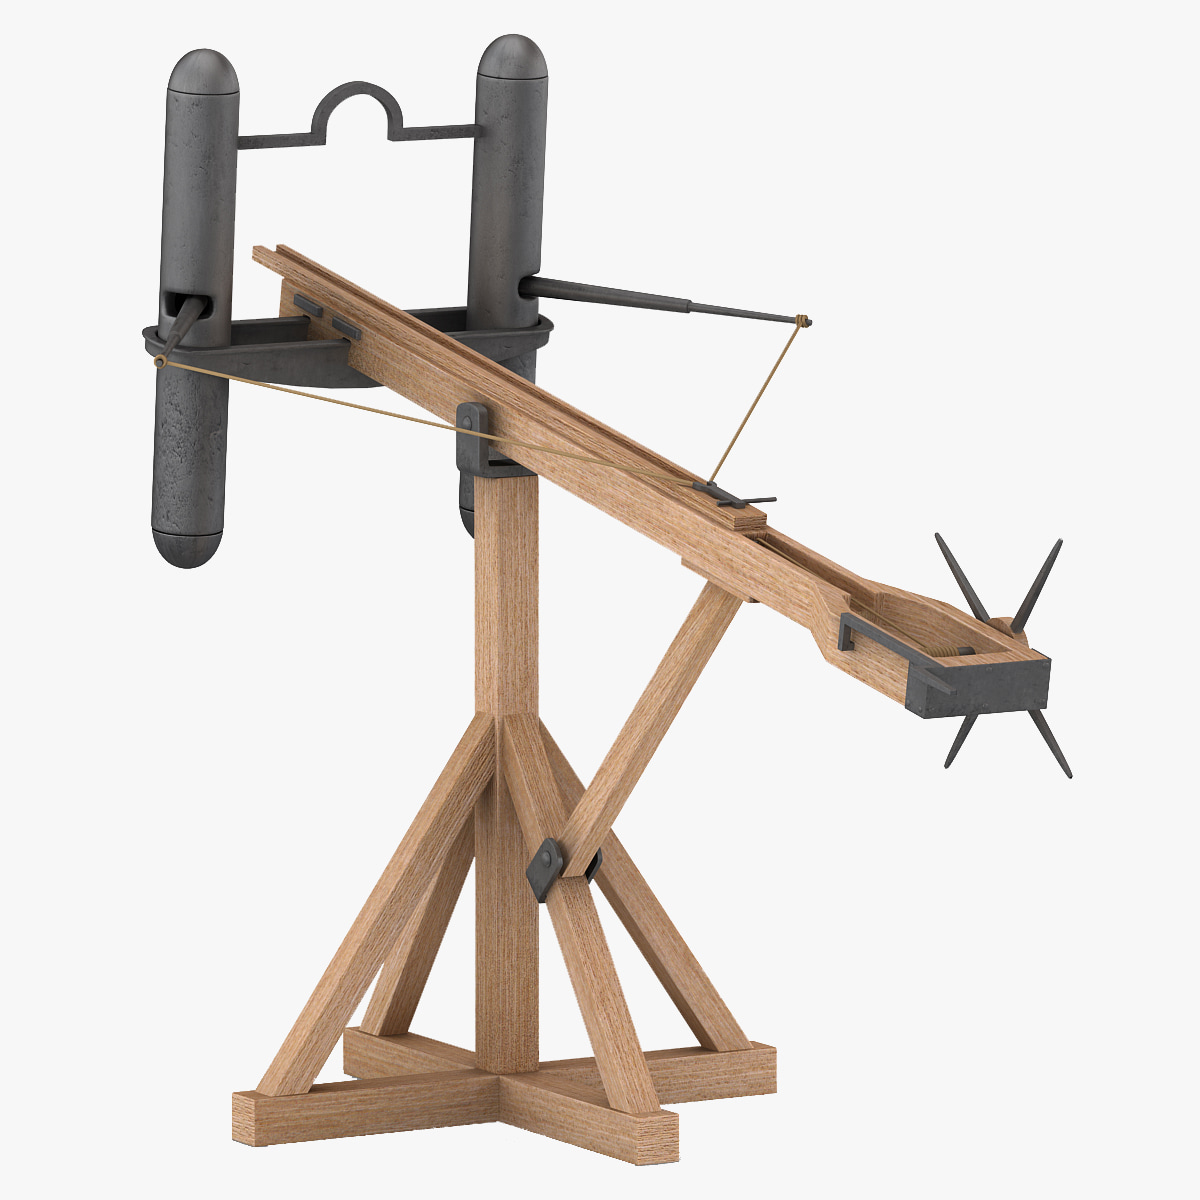 Roman_Light_Ballista_000.jpg